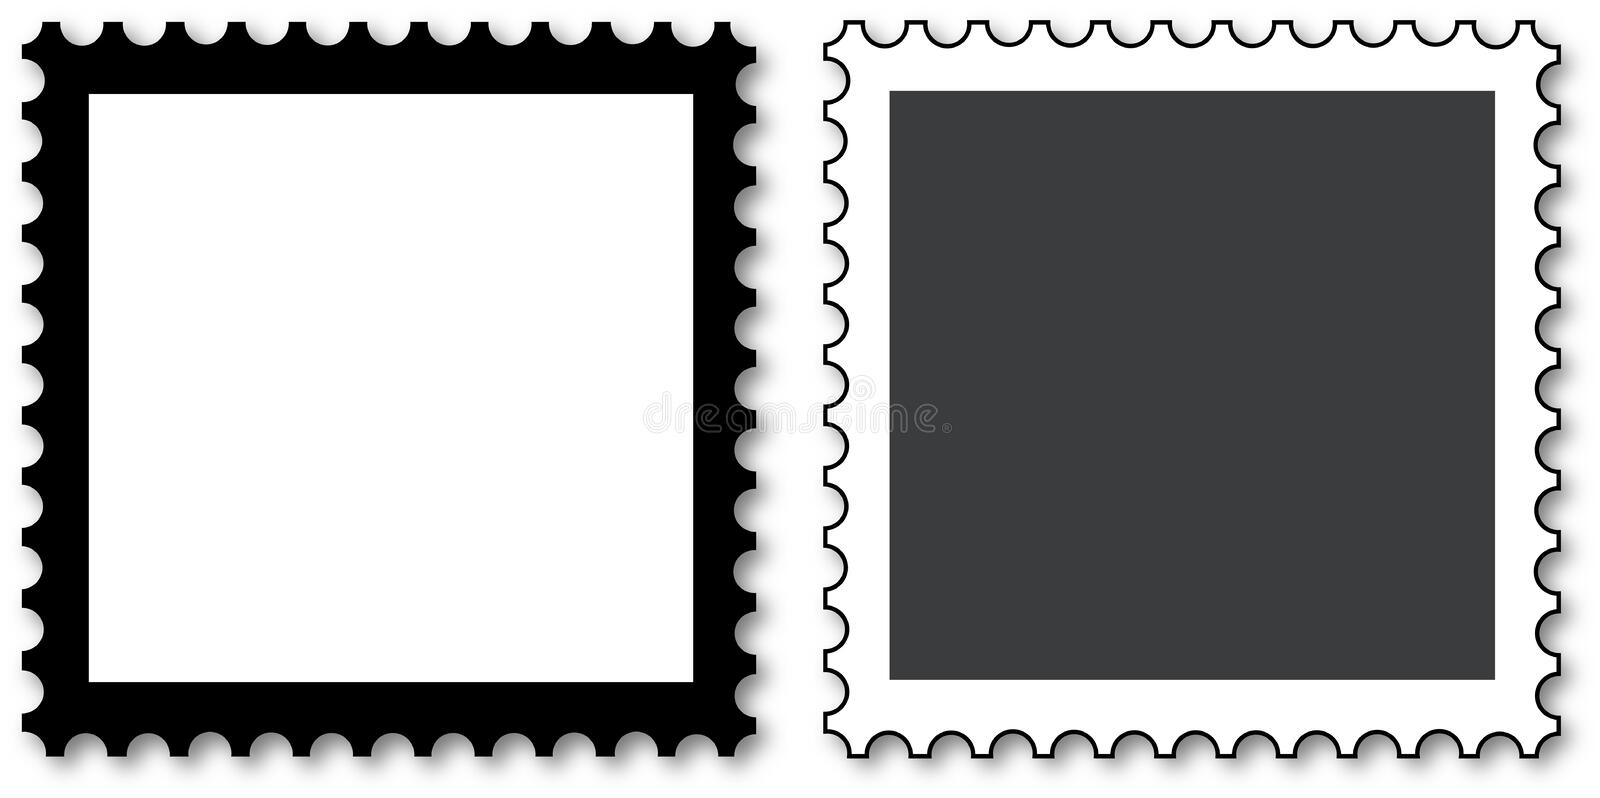 Stamps to fill stock illustration